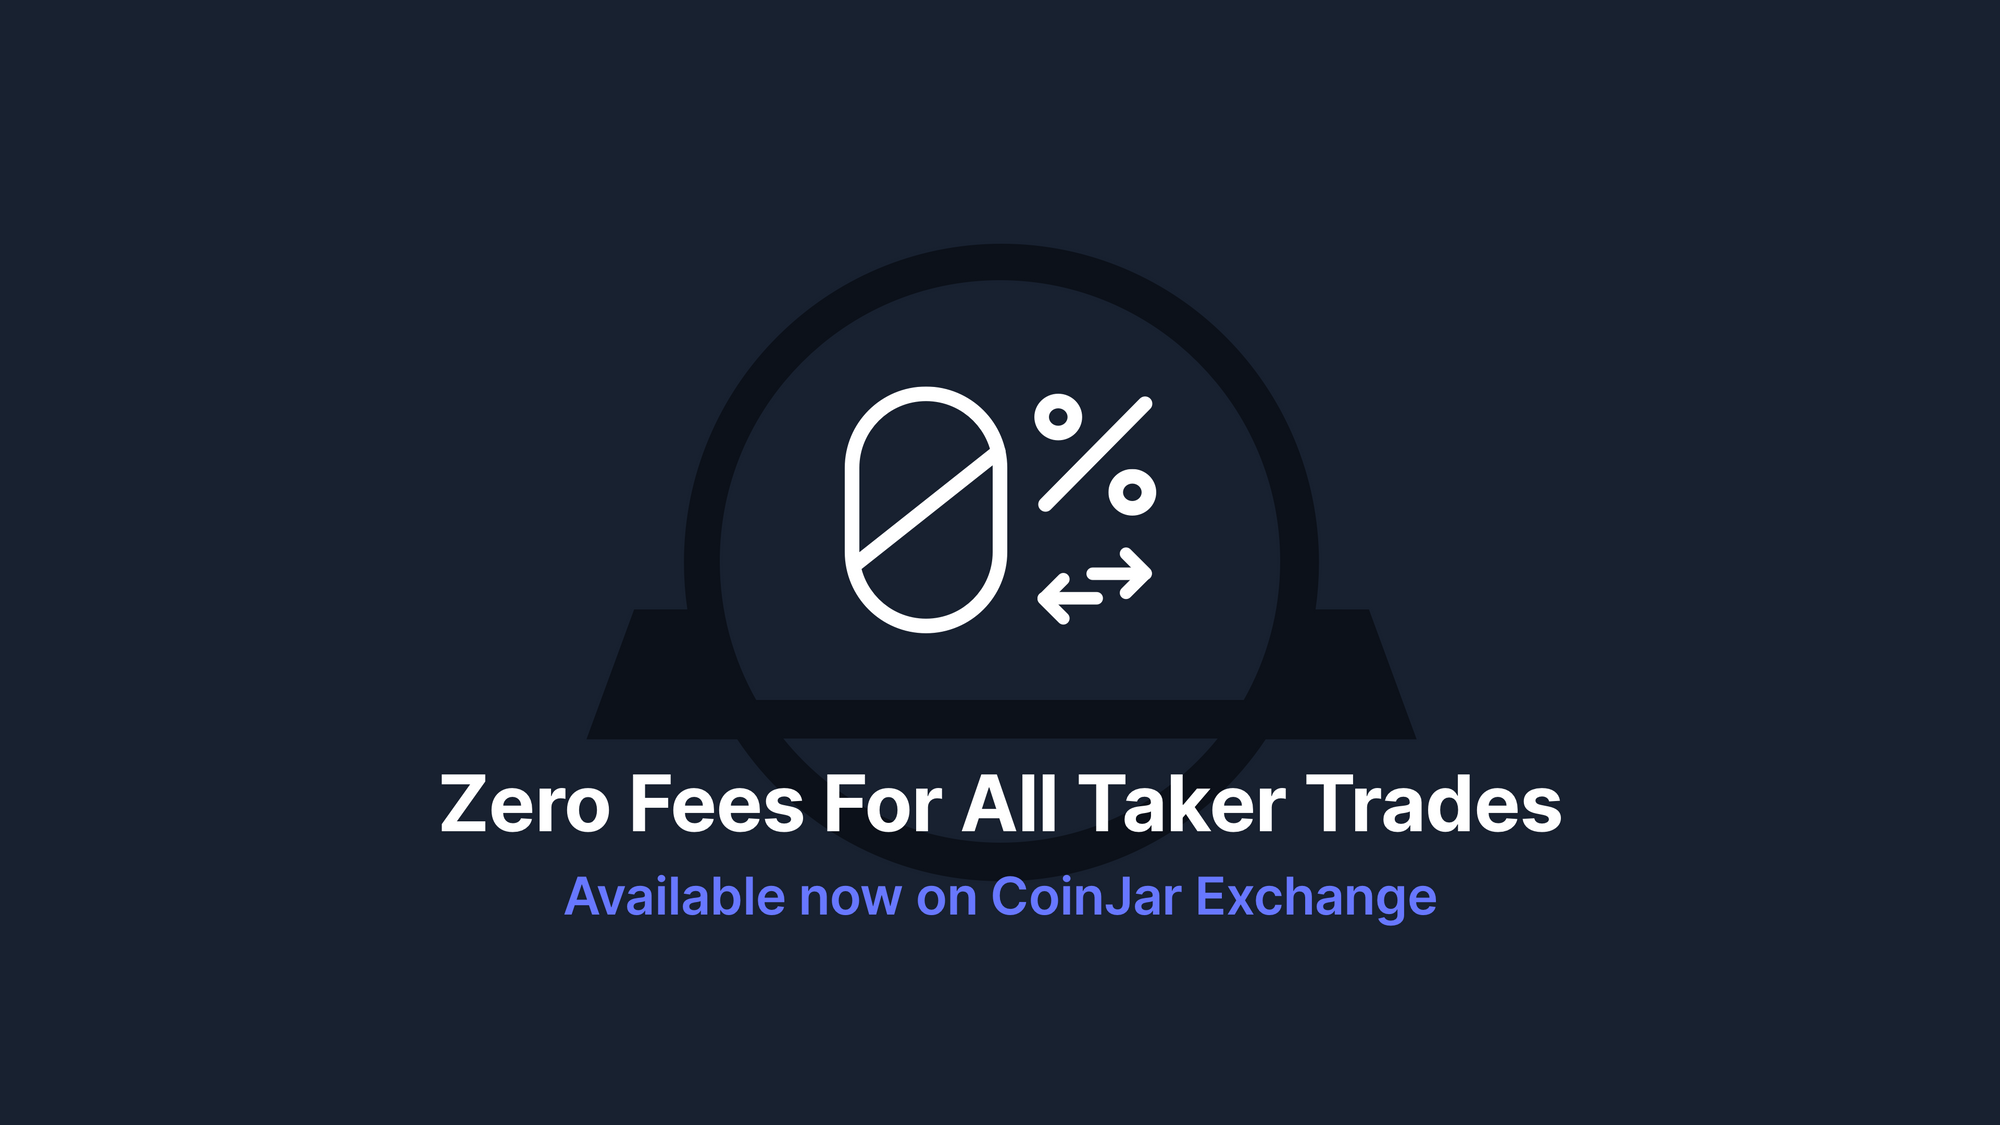 CoinJar Exchange 0 Taker Fees All Trading Pairs